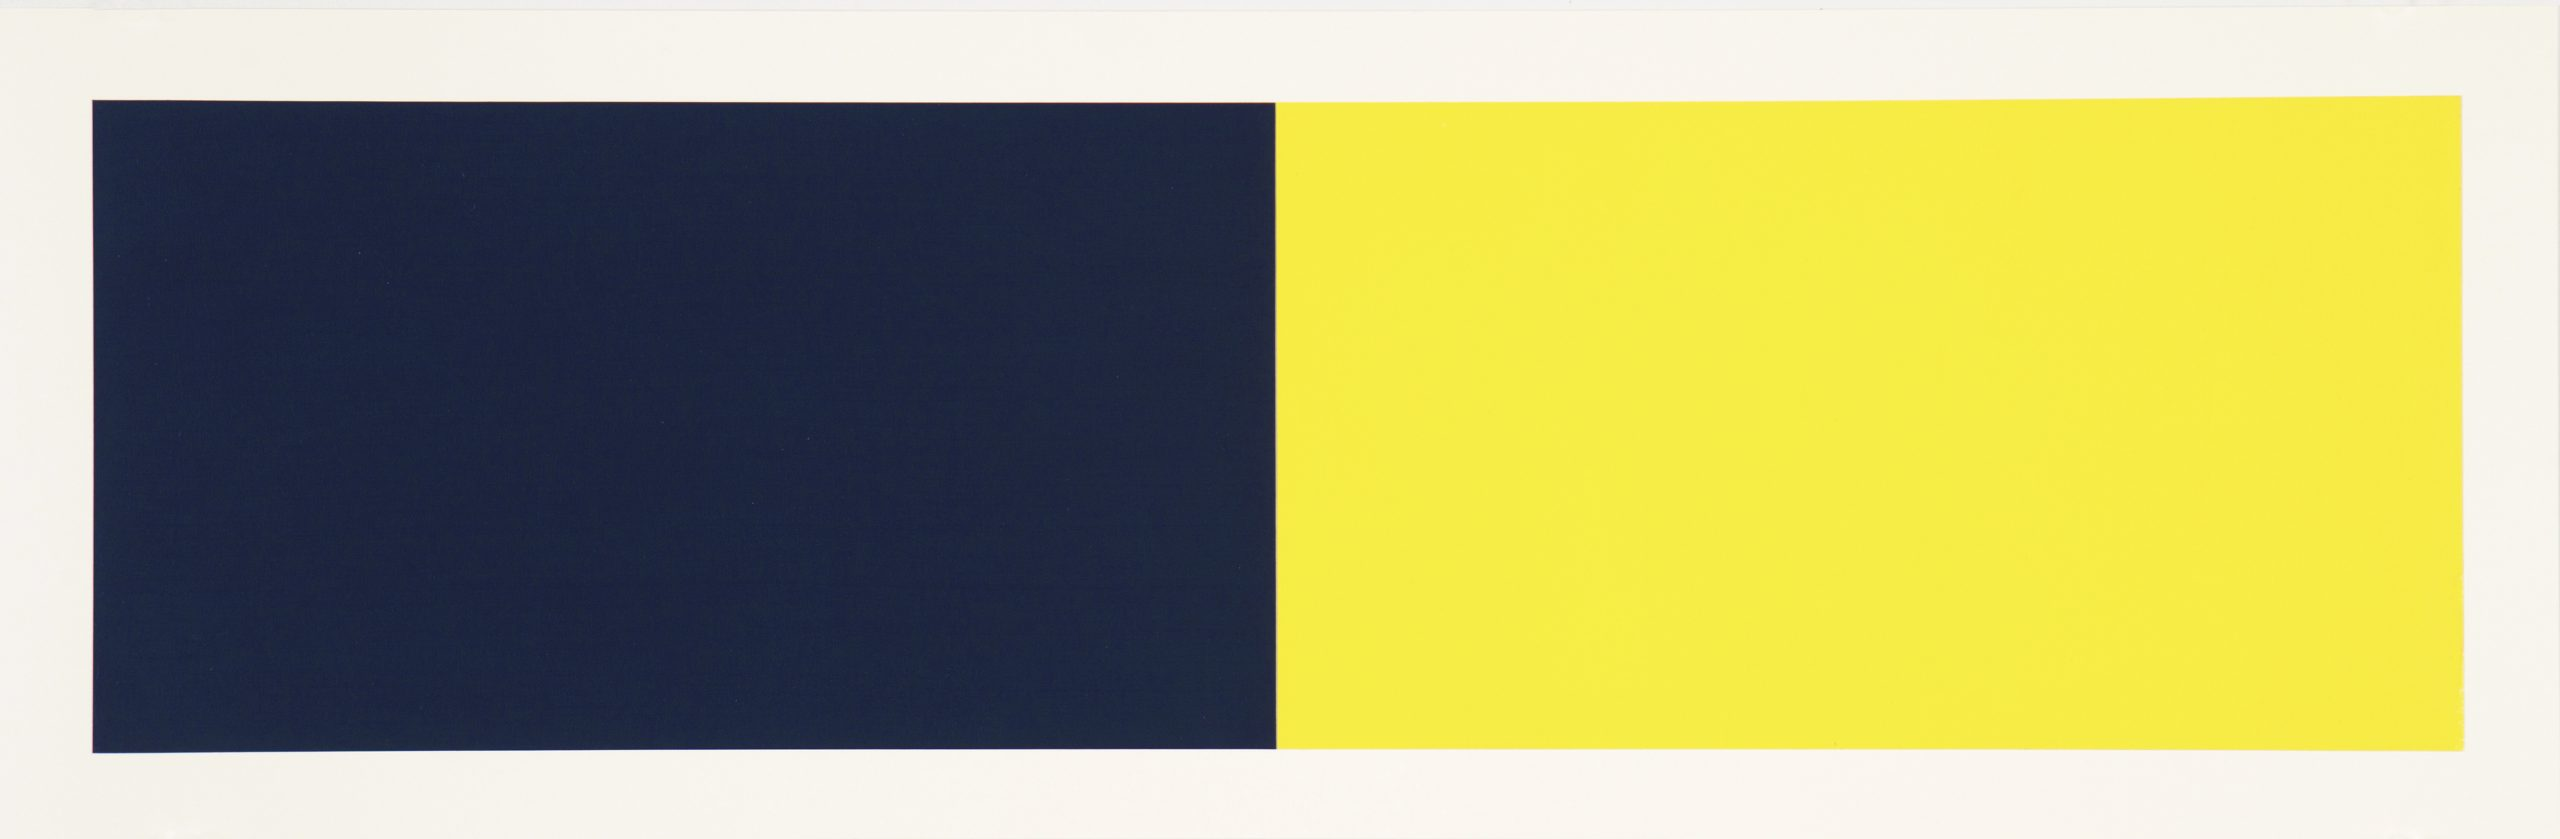 Rivers And Mountains/2, Blue-green/yellow by Rupert Deese